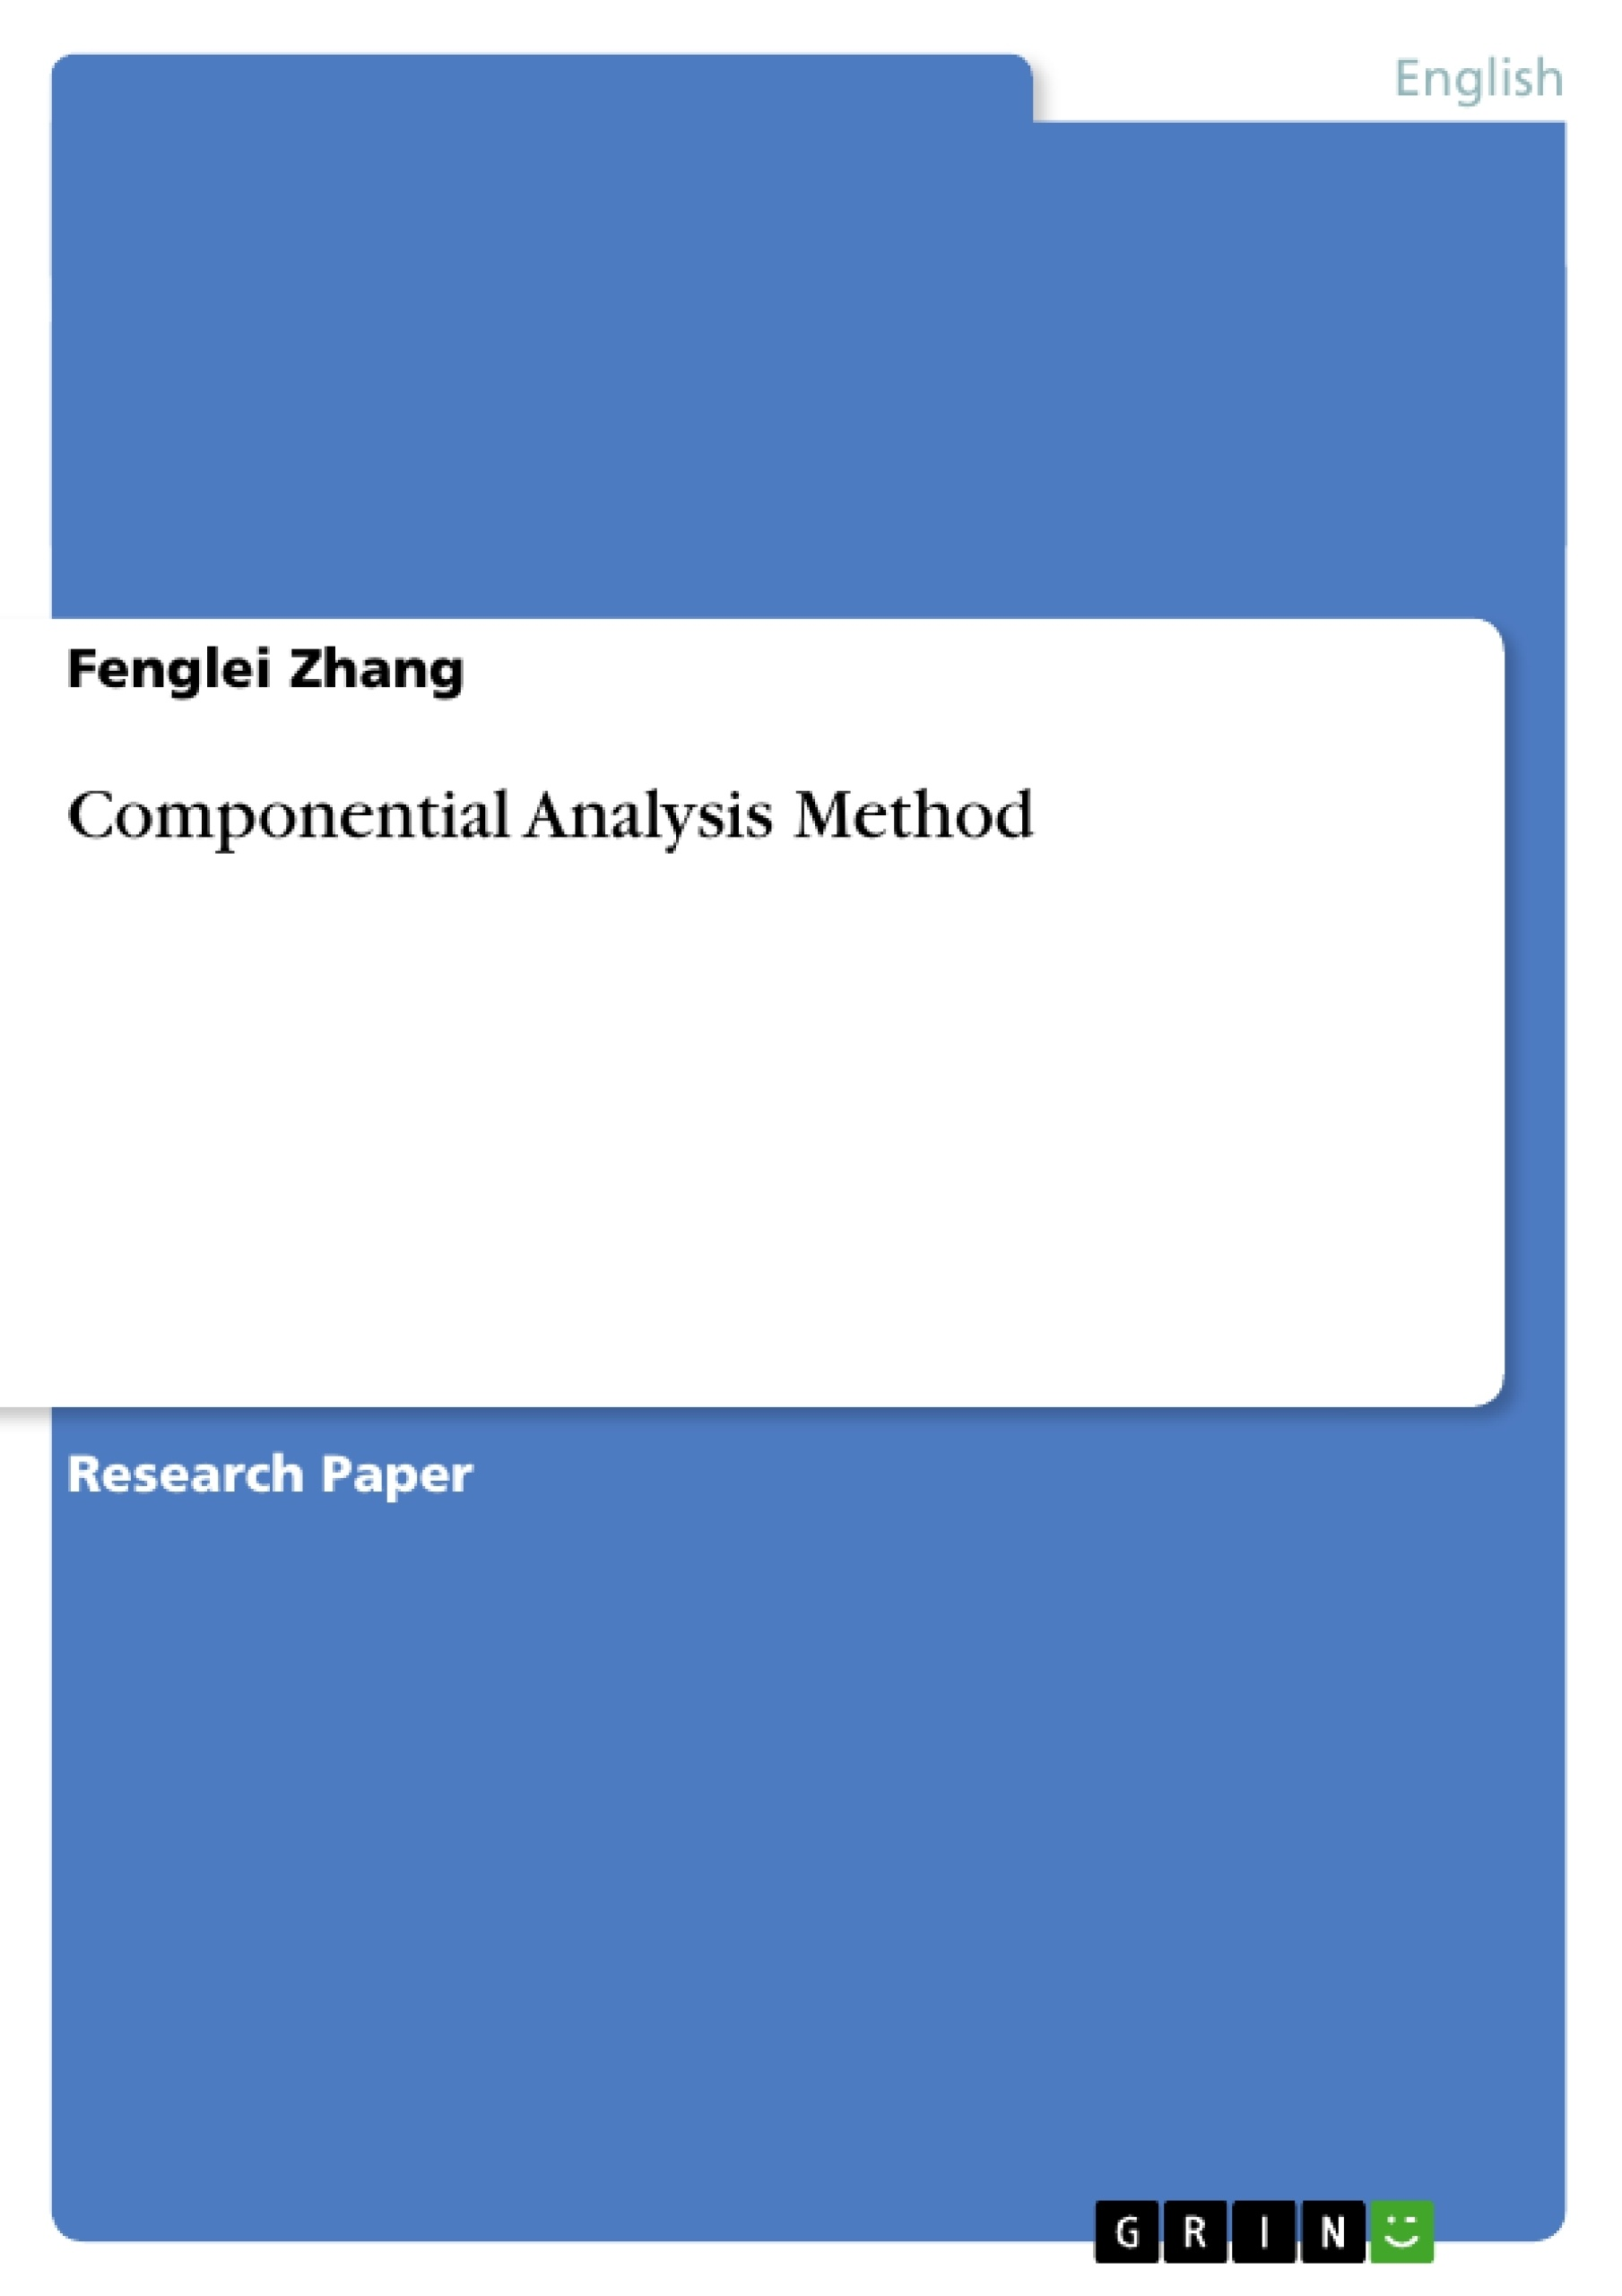 Title: Componential Analysis Method